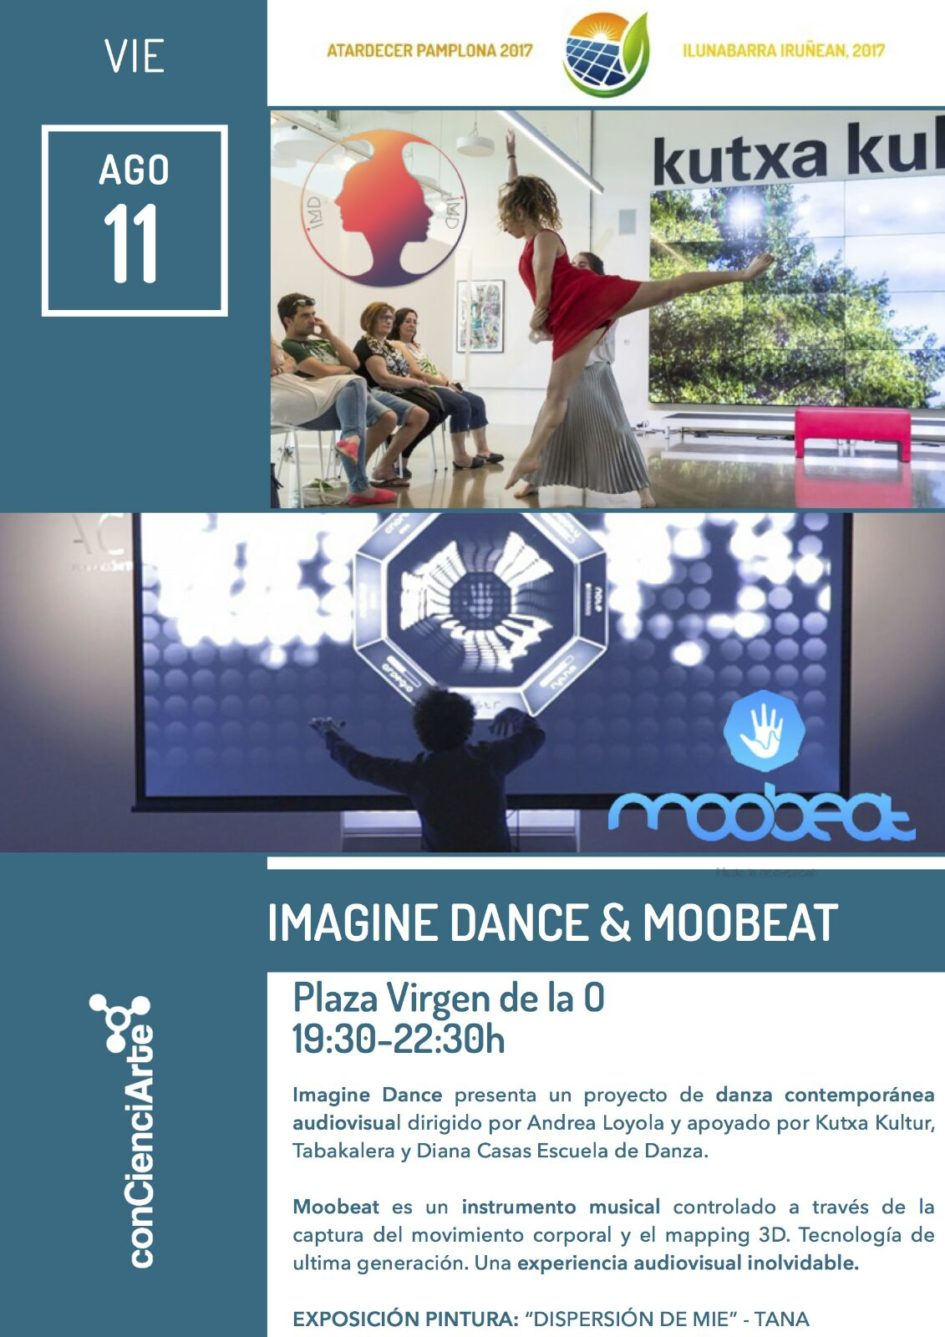 Cartel Imagine Dance en Atardecer Pamplona 2017